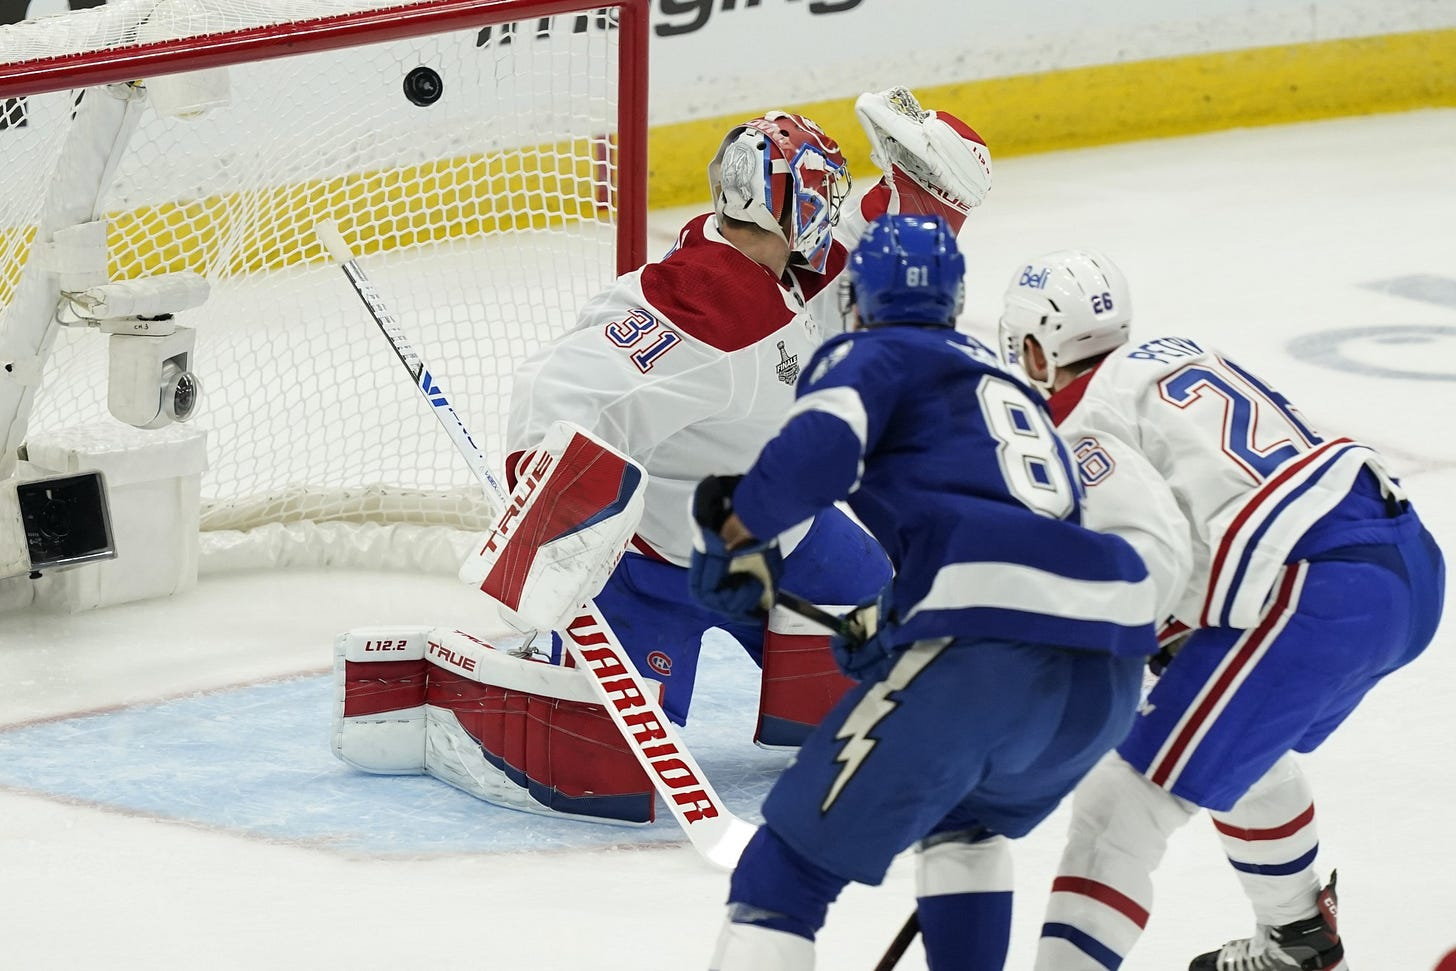 PHOTOS | Tampa Bay Lightning vs Montreal Canadiens, Stanley Cup Final Game 1